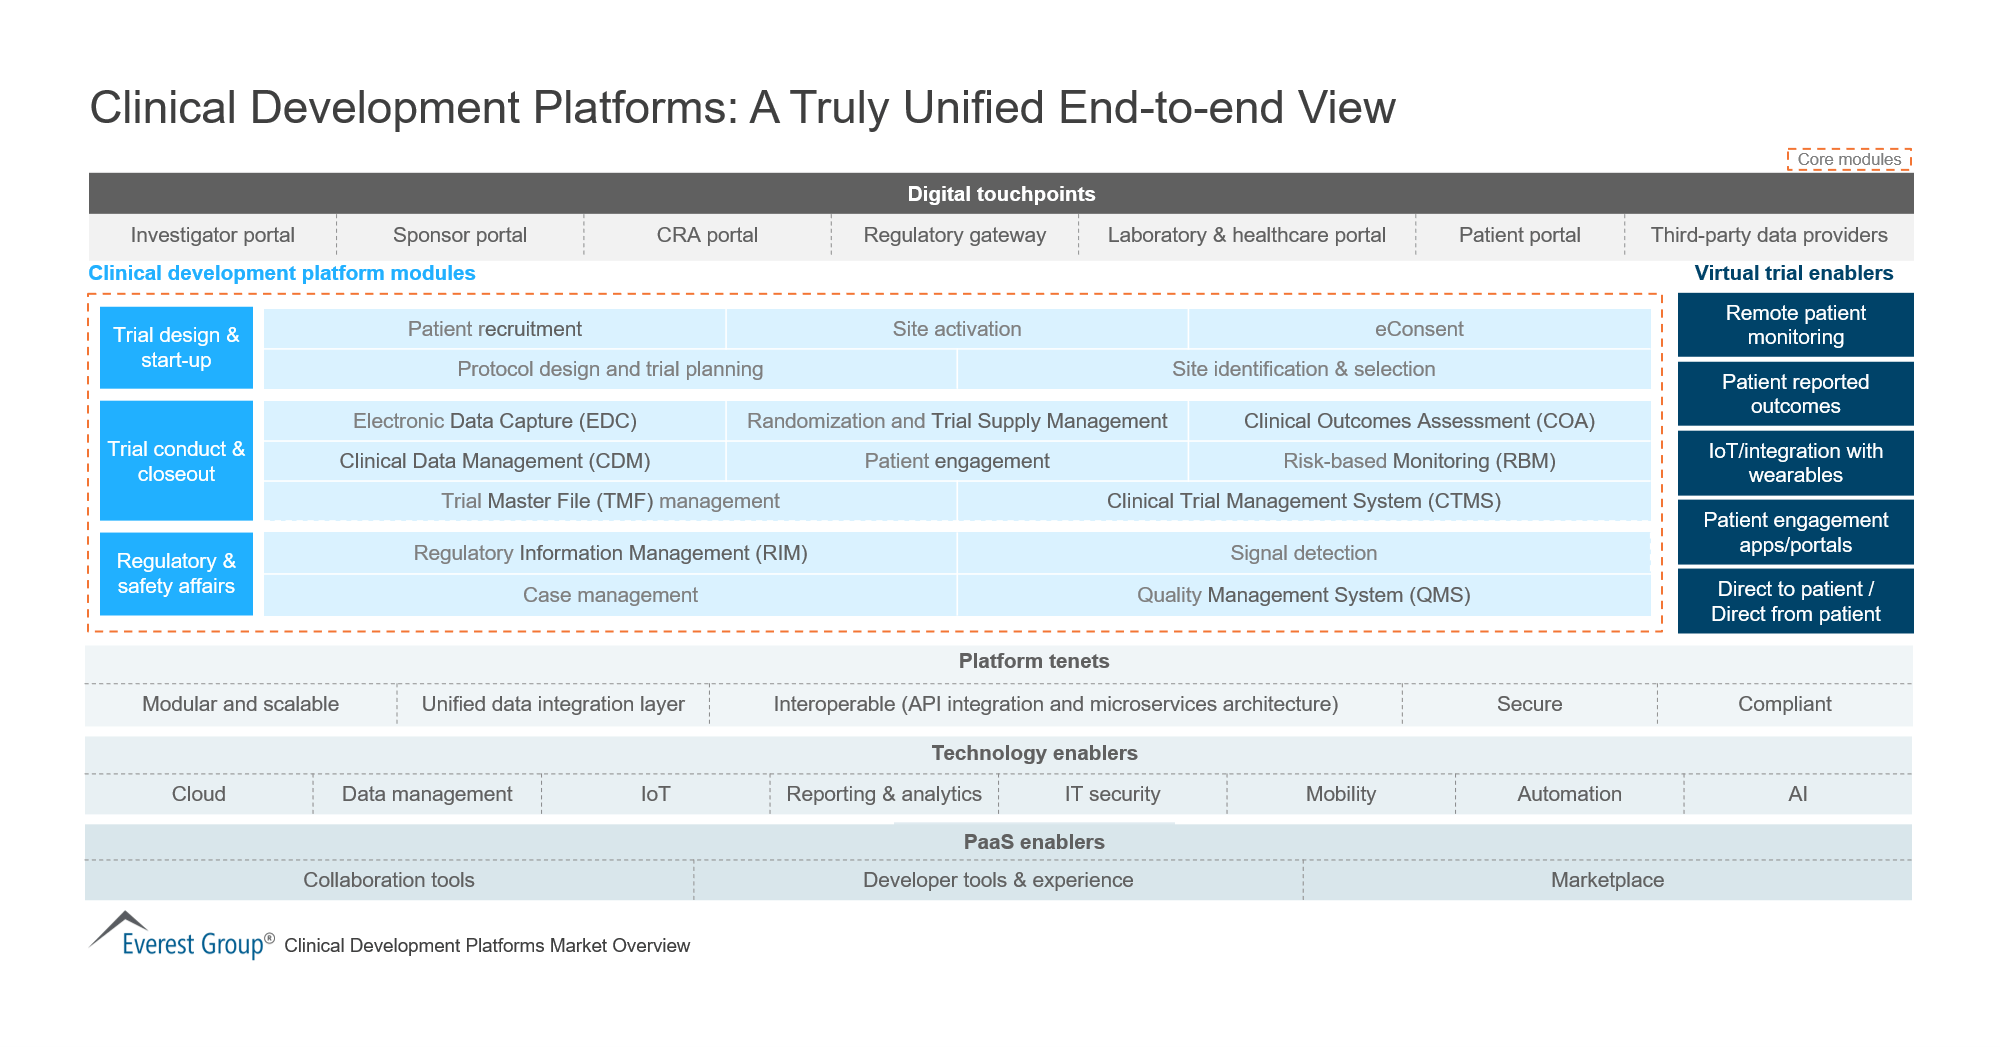 Clinical Development Platforms - A Truly Unified End-to-end View